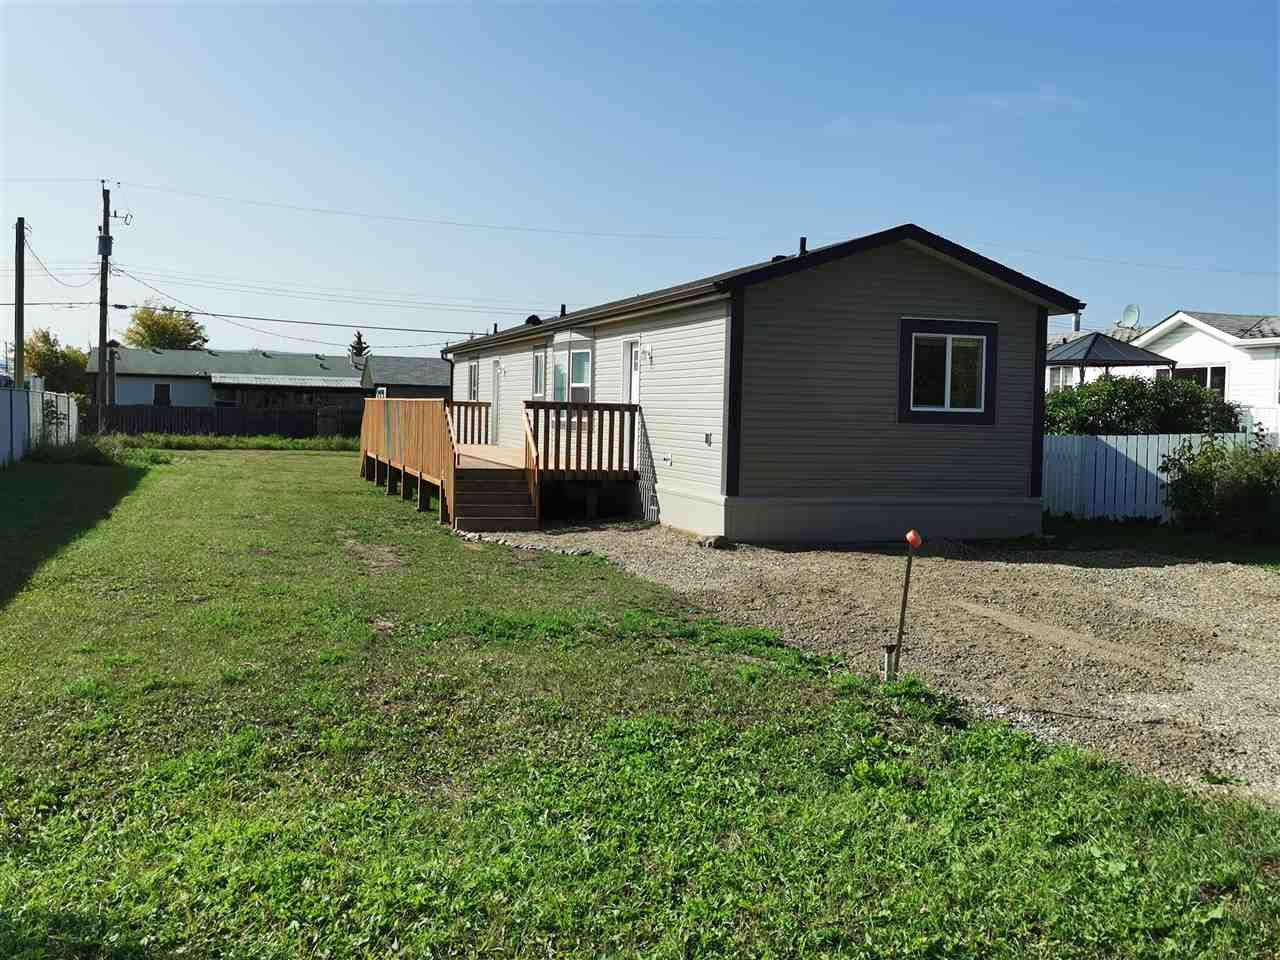 Main Photo: 10464 98 Street: Taylor Manufactured Home for sale (Fort St. John (Zone 60))  : MLS®# R2499625